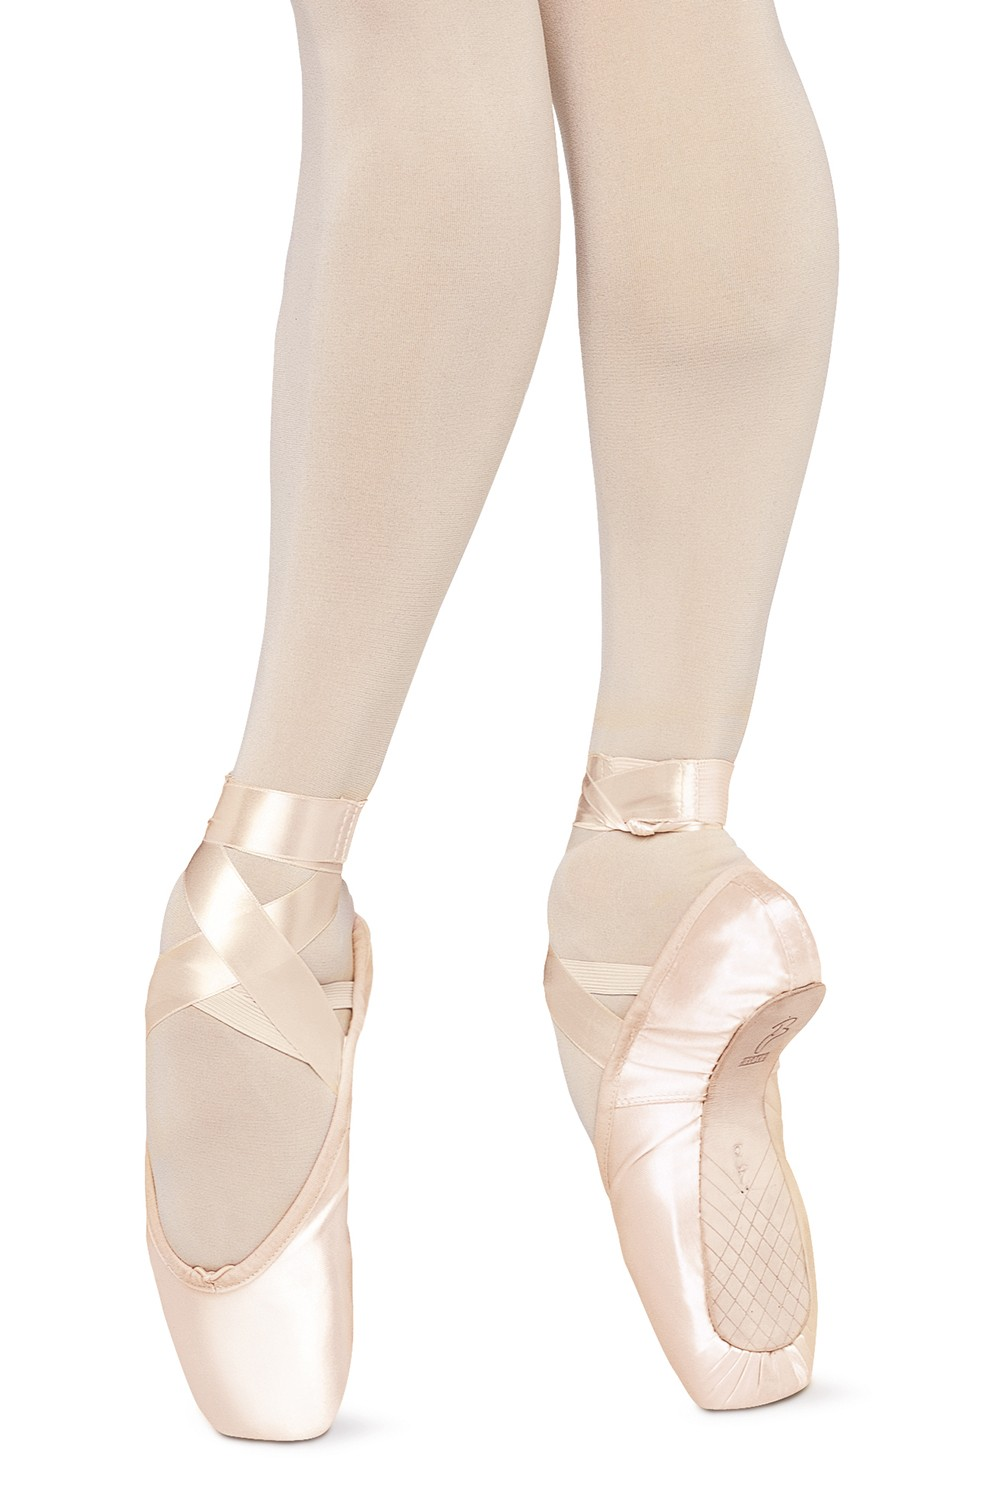 Sonata Ladies Pointe Shoes